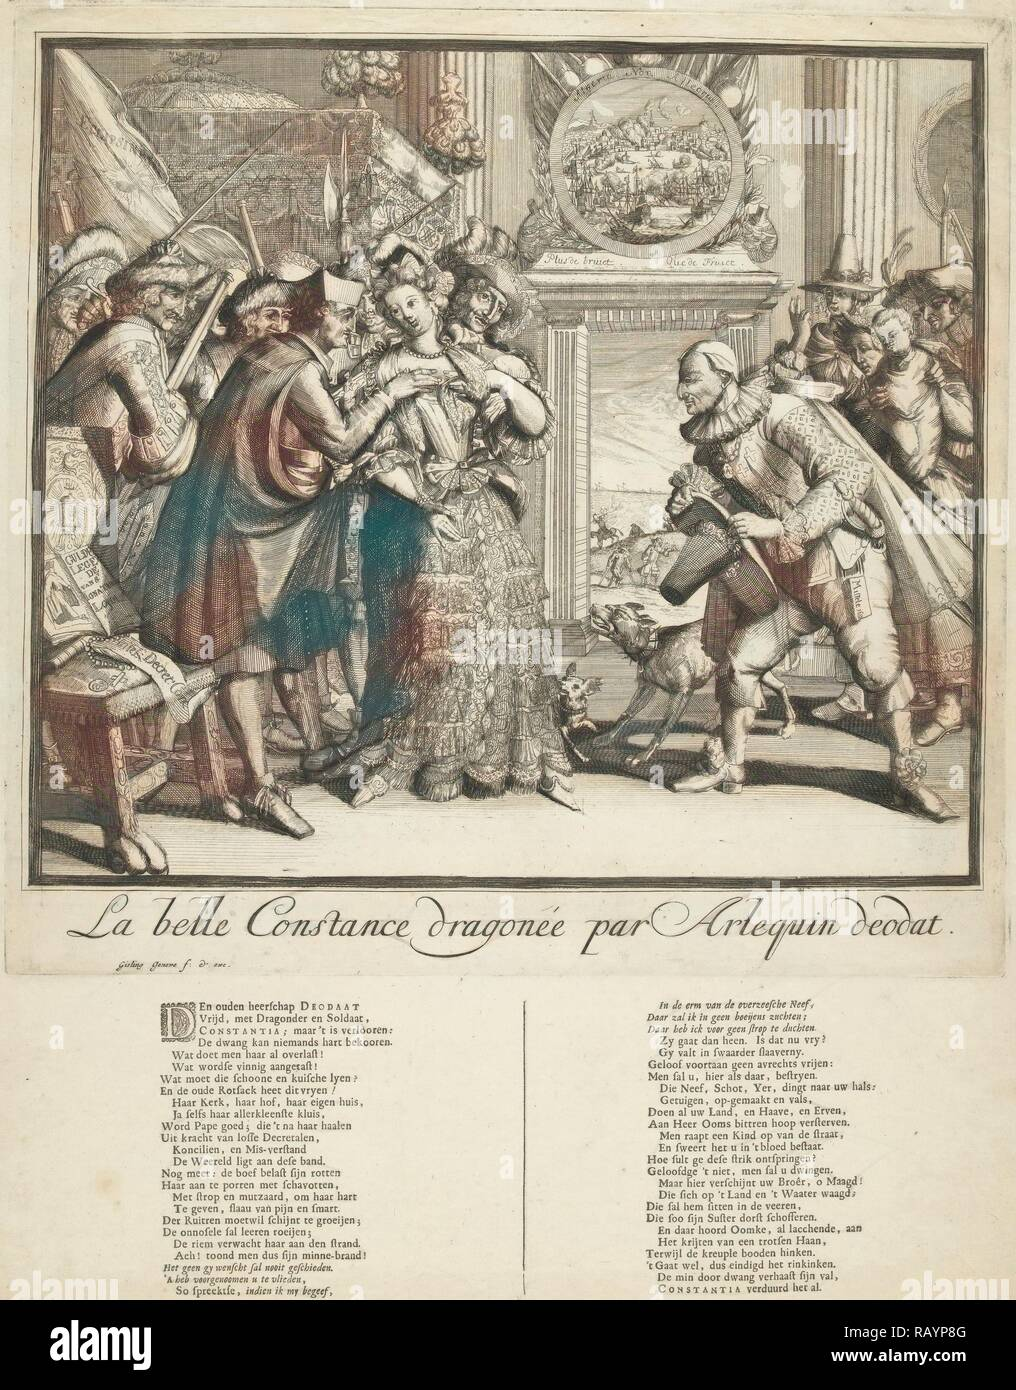 Cartoon by Louis XIV and the persecution of Protestants in France, 1689, print maker: Gisling, print maker: Romeyn de reimagined - Stock Image